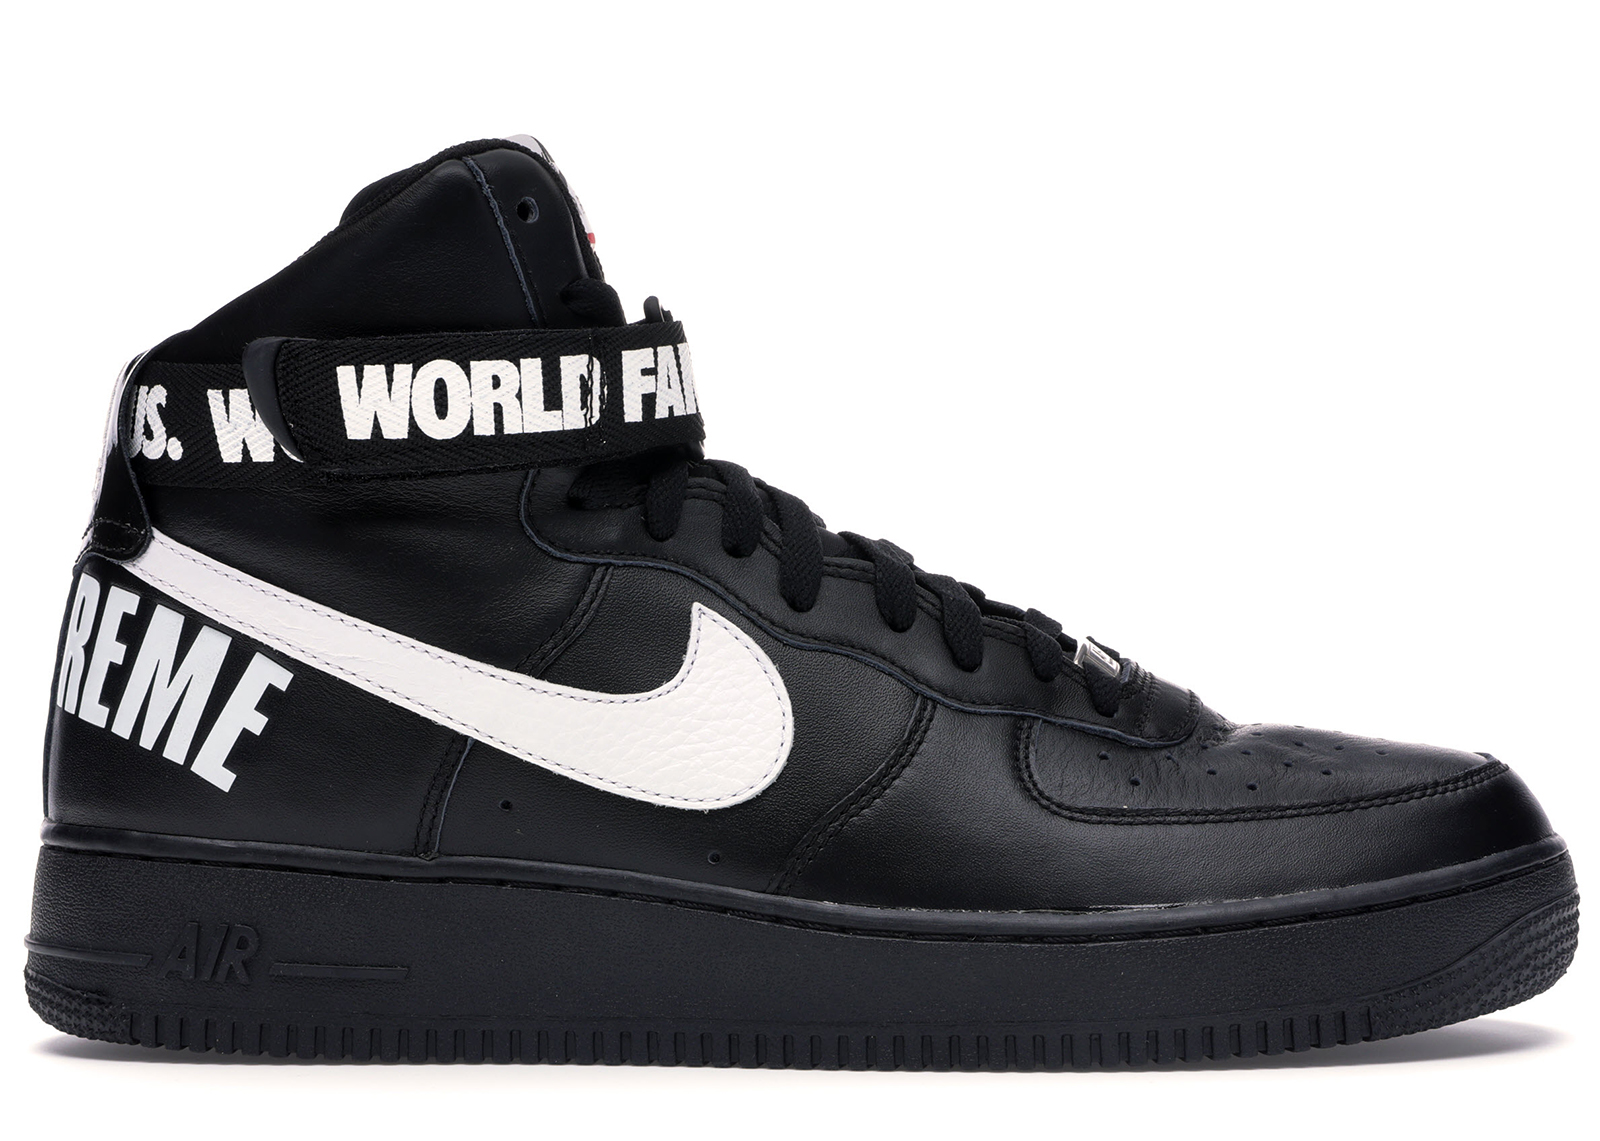 Nike Air Force 1 High Supreme World Famous Black